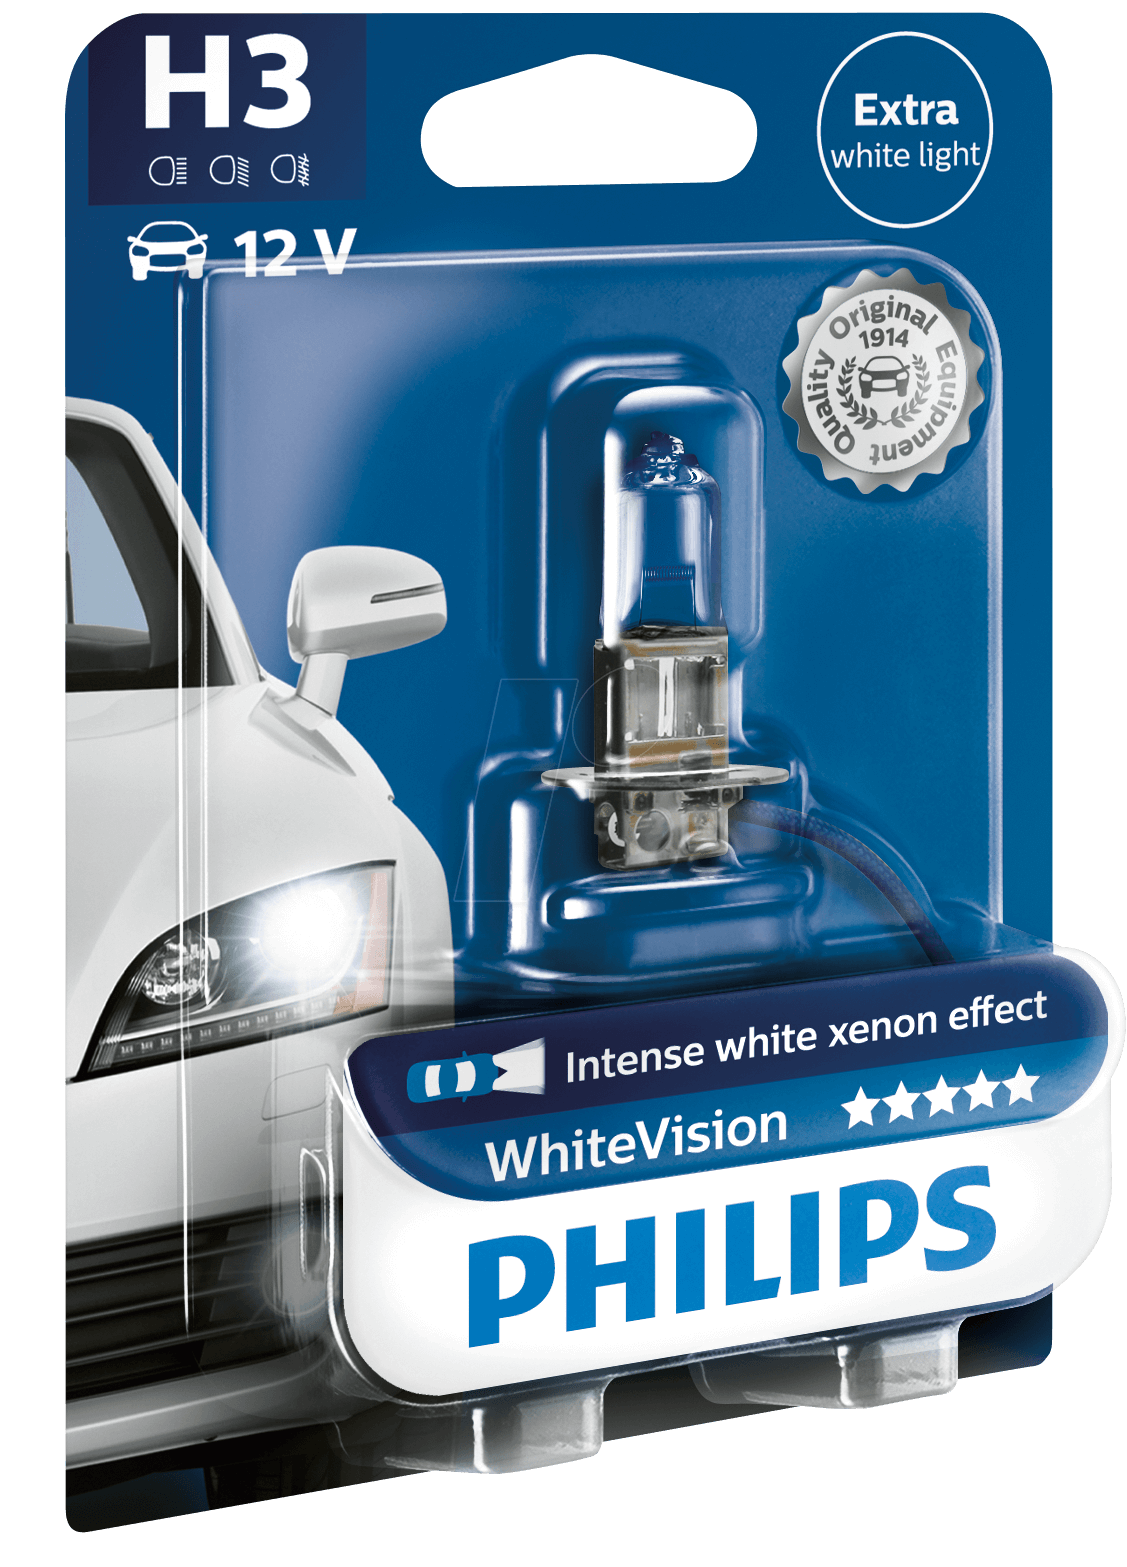 PHI H3 WHITE1 - H3 headlight bulb Philips White Vision, single unit